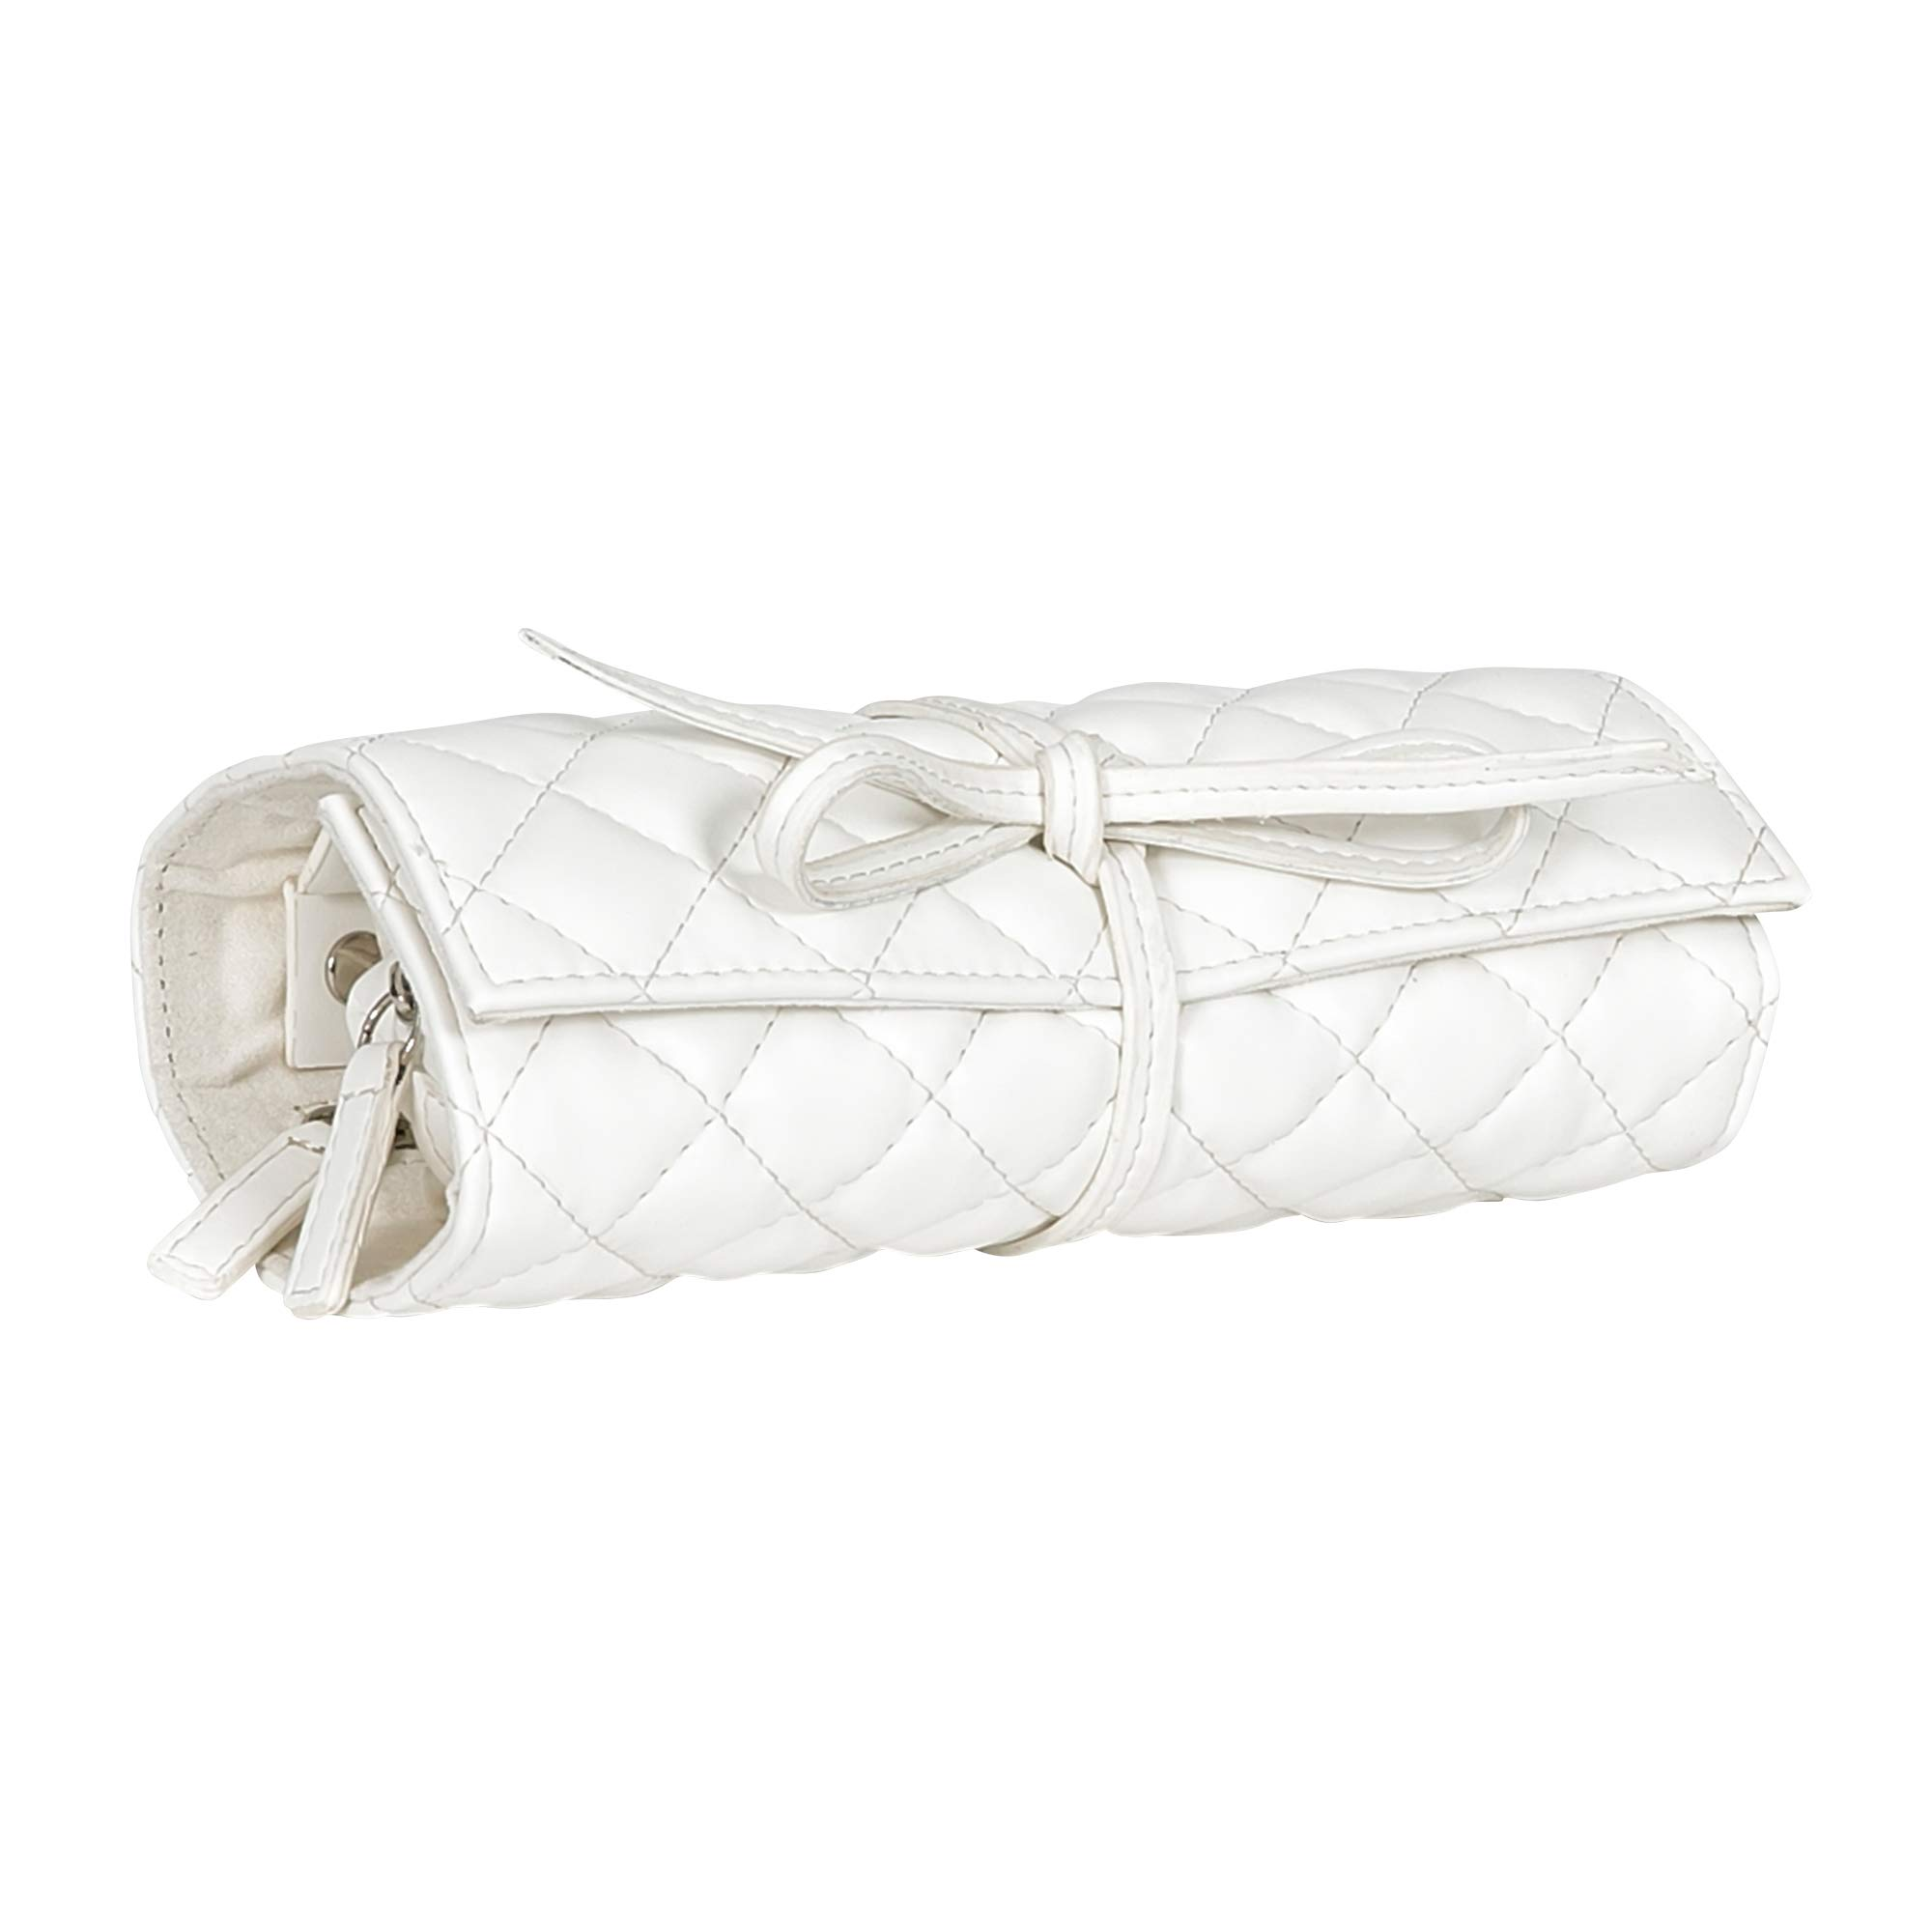 Mele & Co. Whitley Travel Jewelry Roll in White Faux Leather